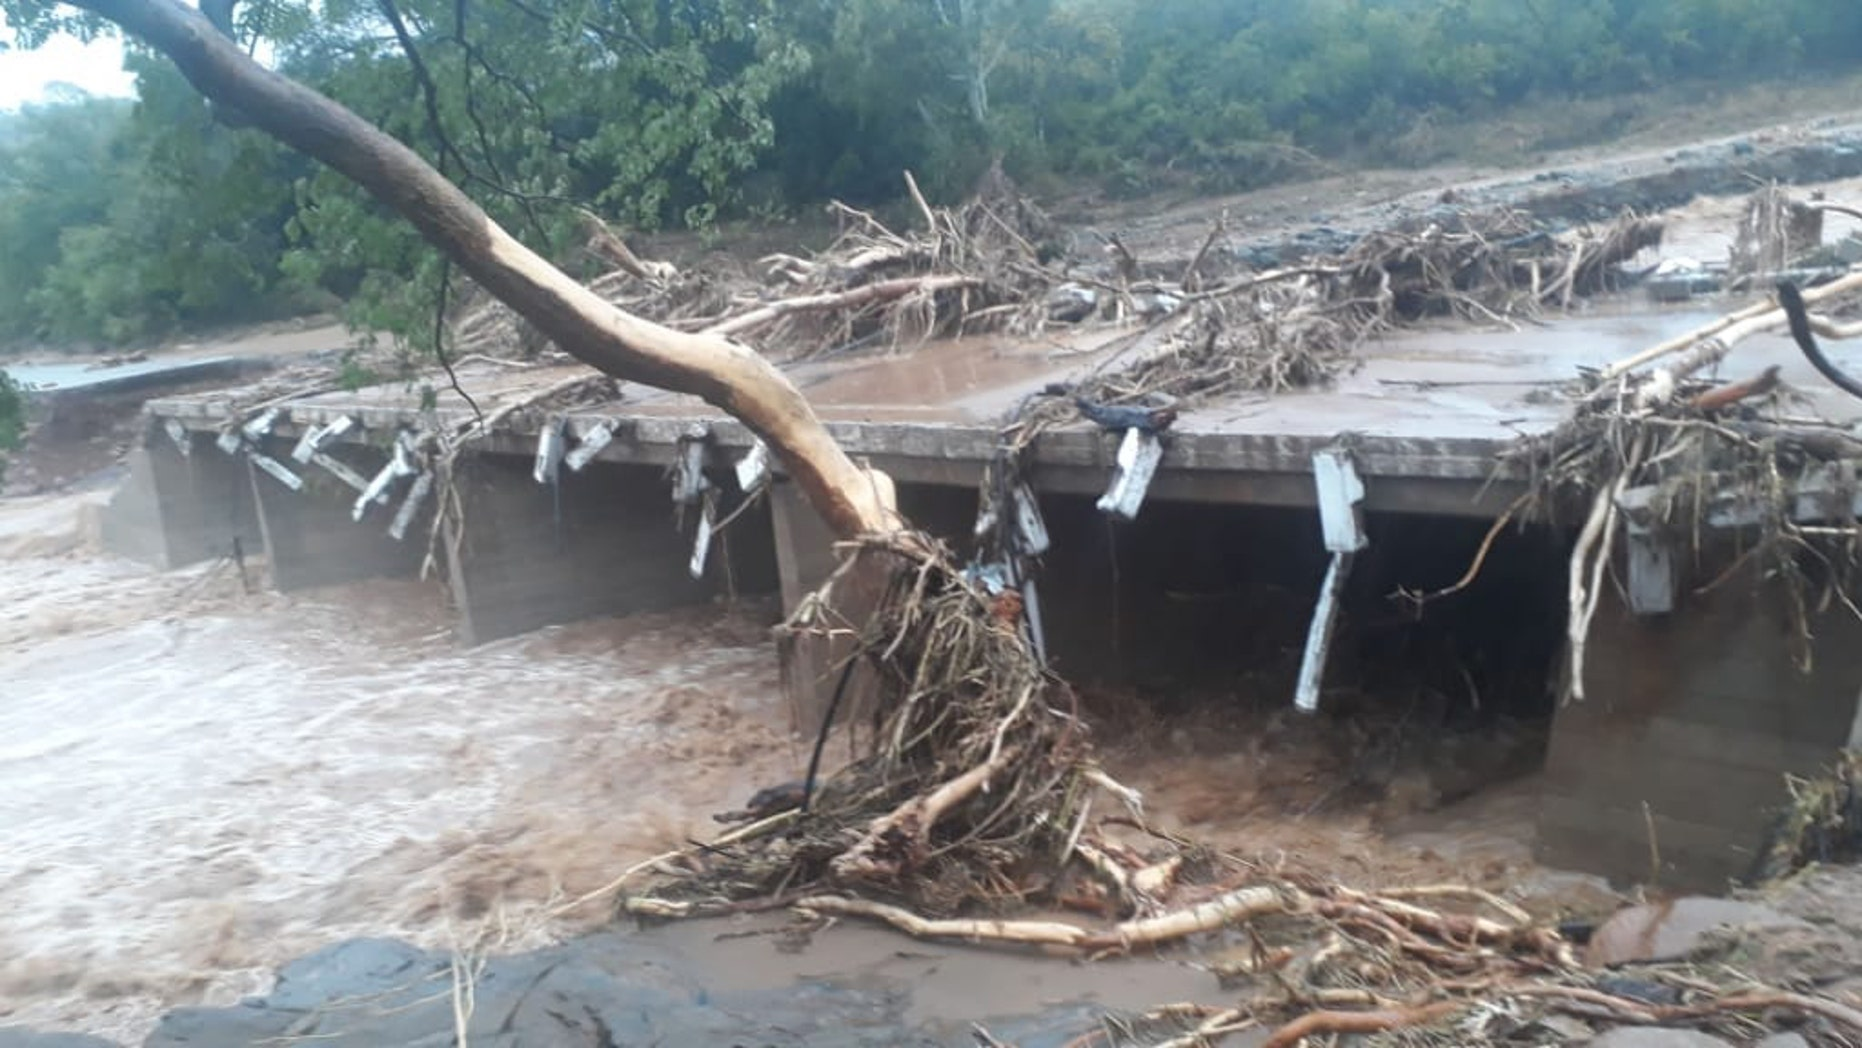 Cyclone ravages Mozambique, Malawi and Zimbabwe, killing at least 140